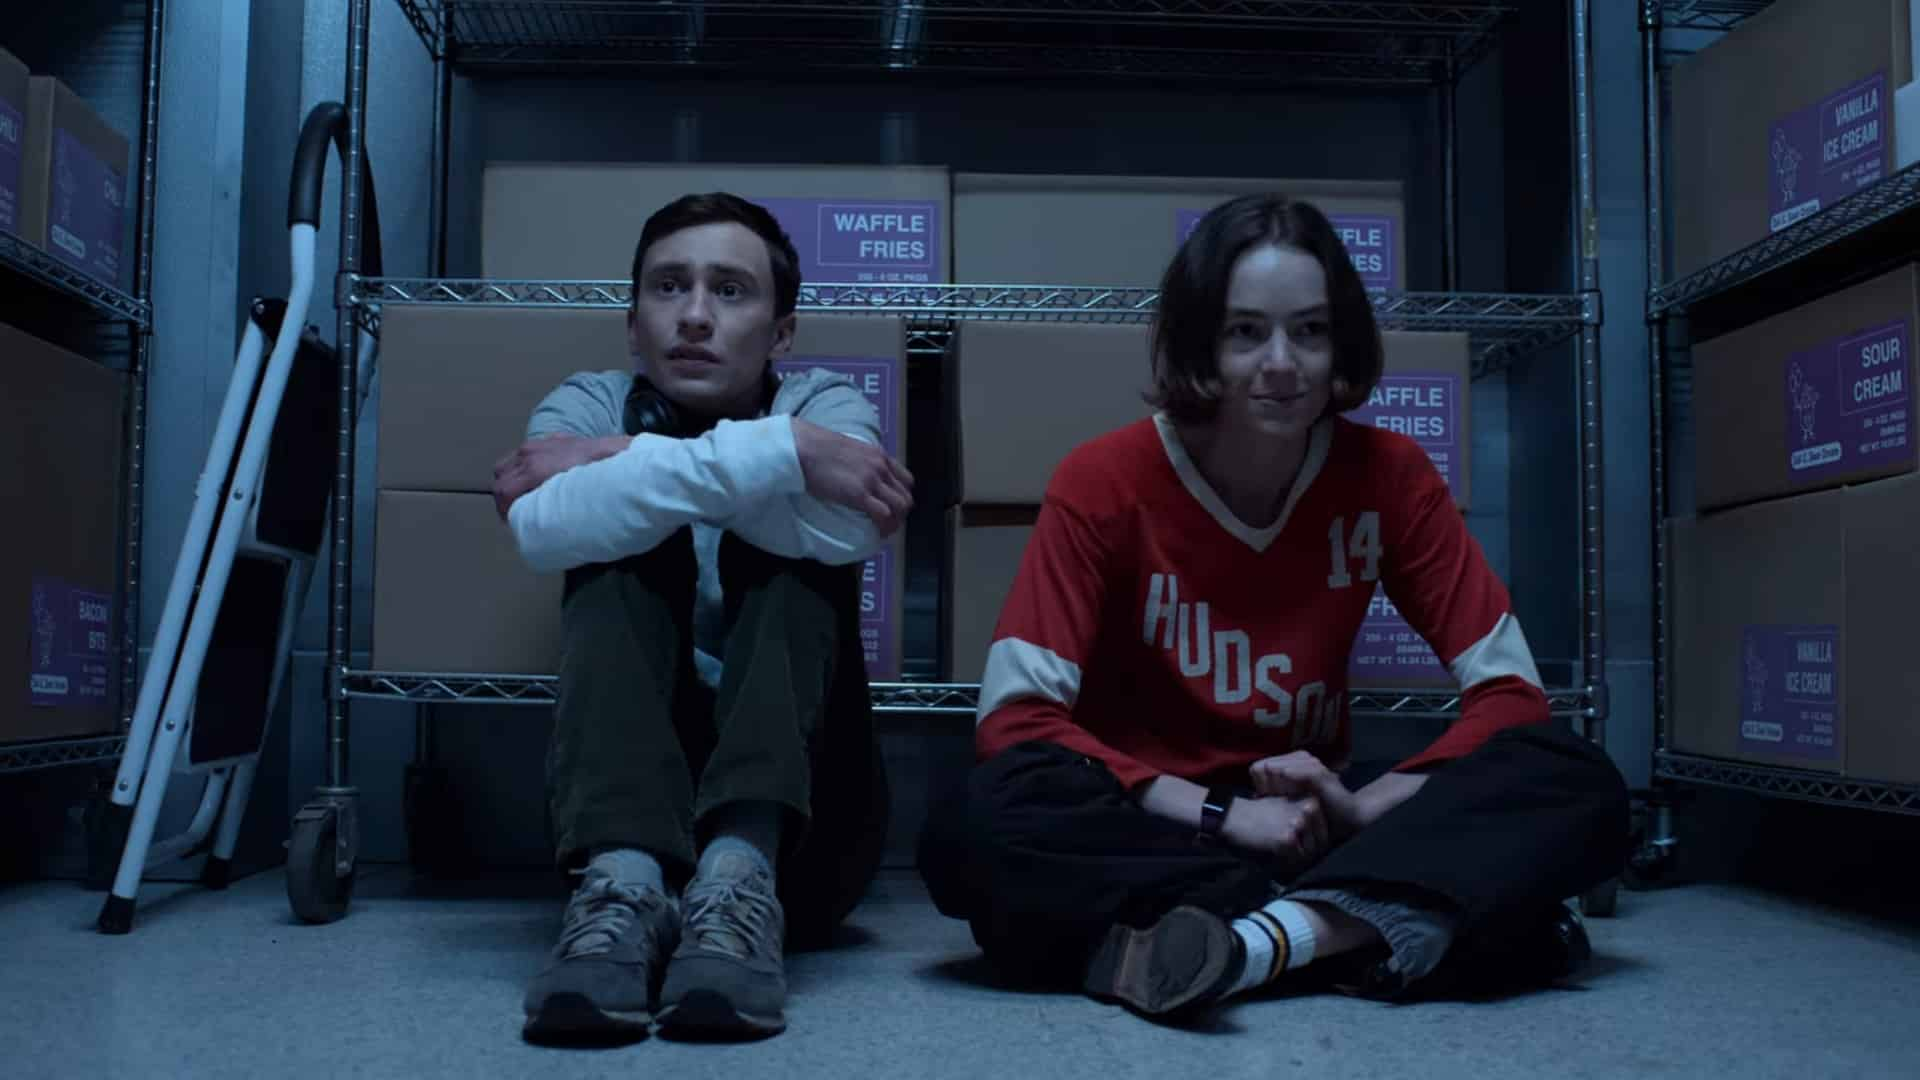 Sam and Casey sitting in a walk in freezer together